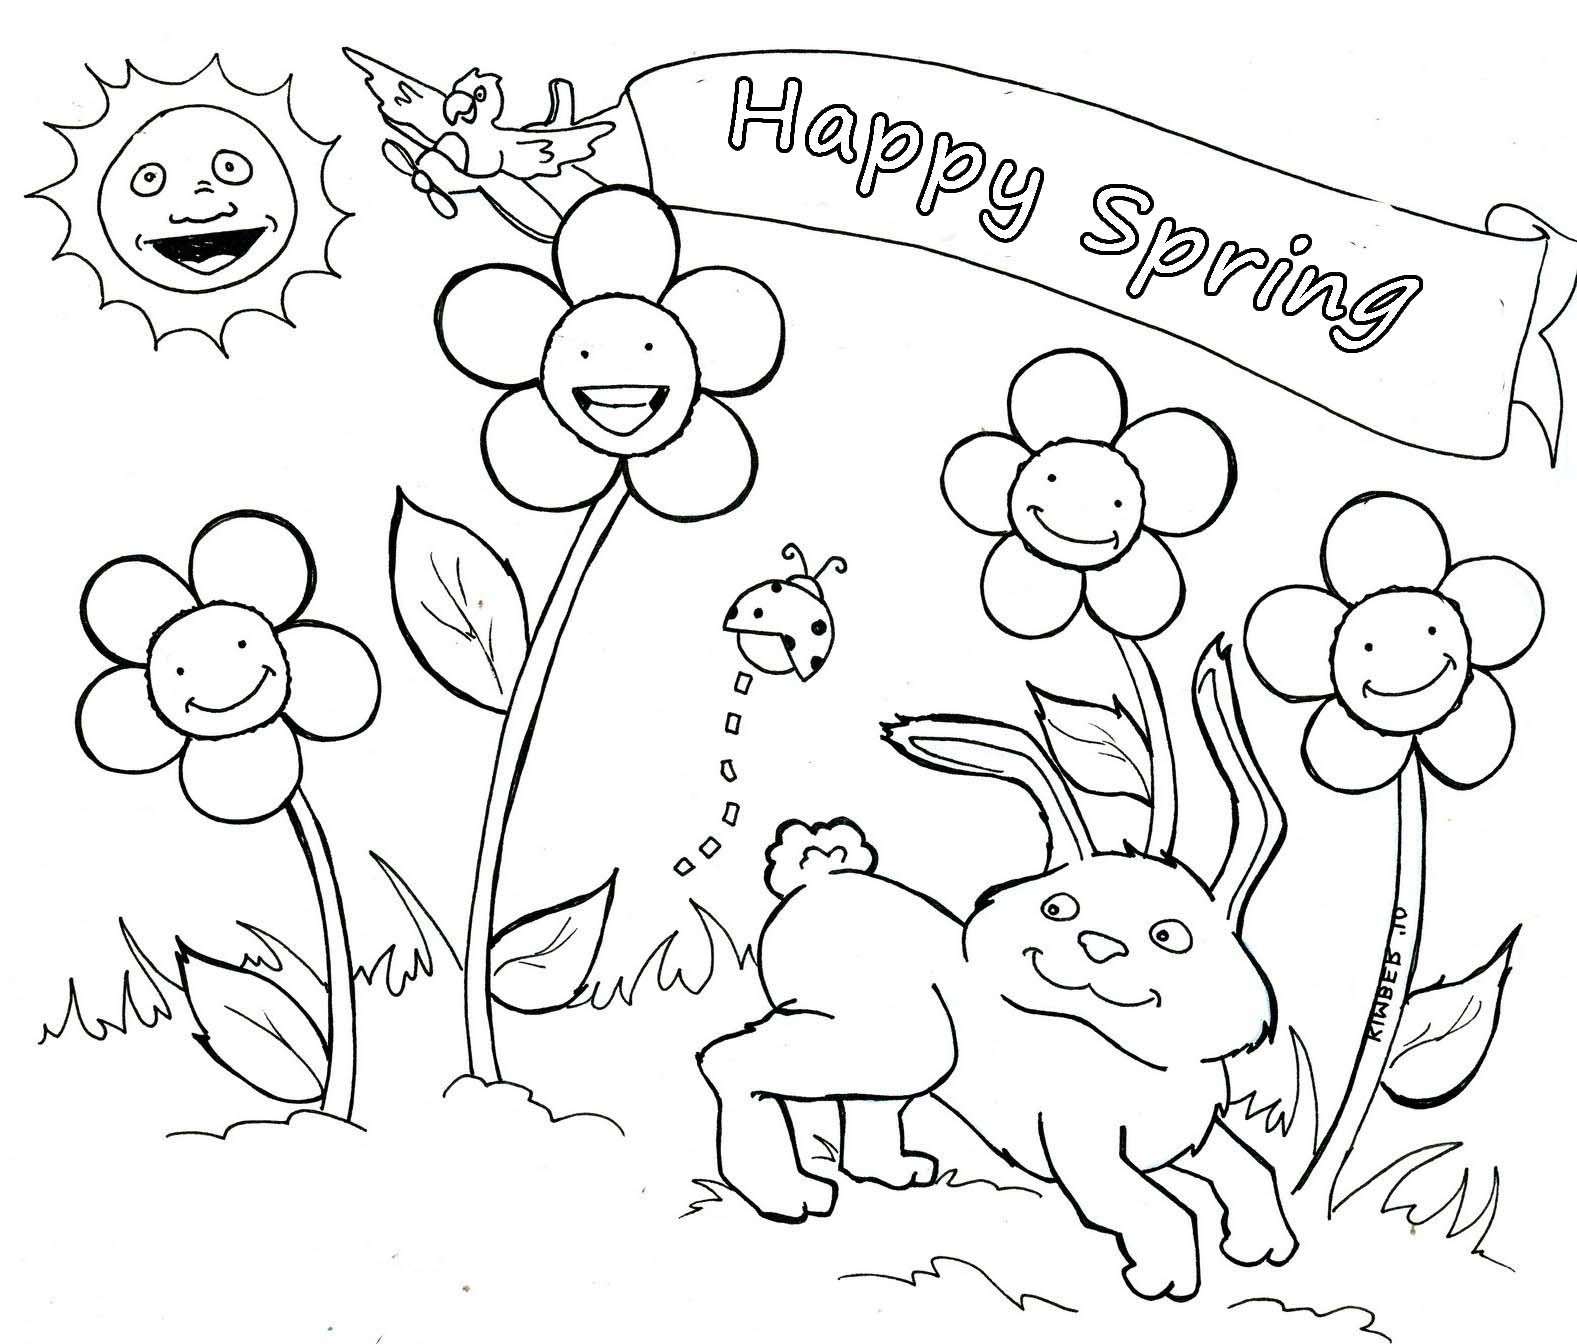 Happy Spring Coloring Pages Kids